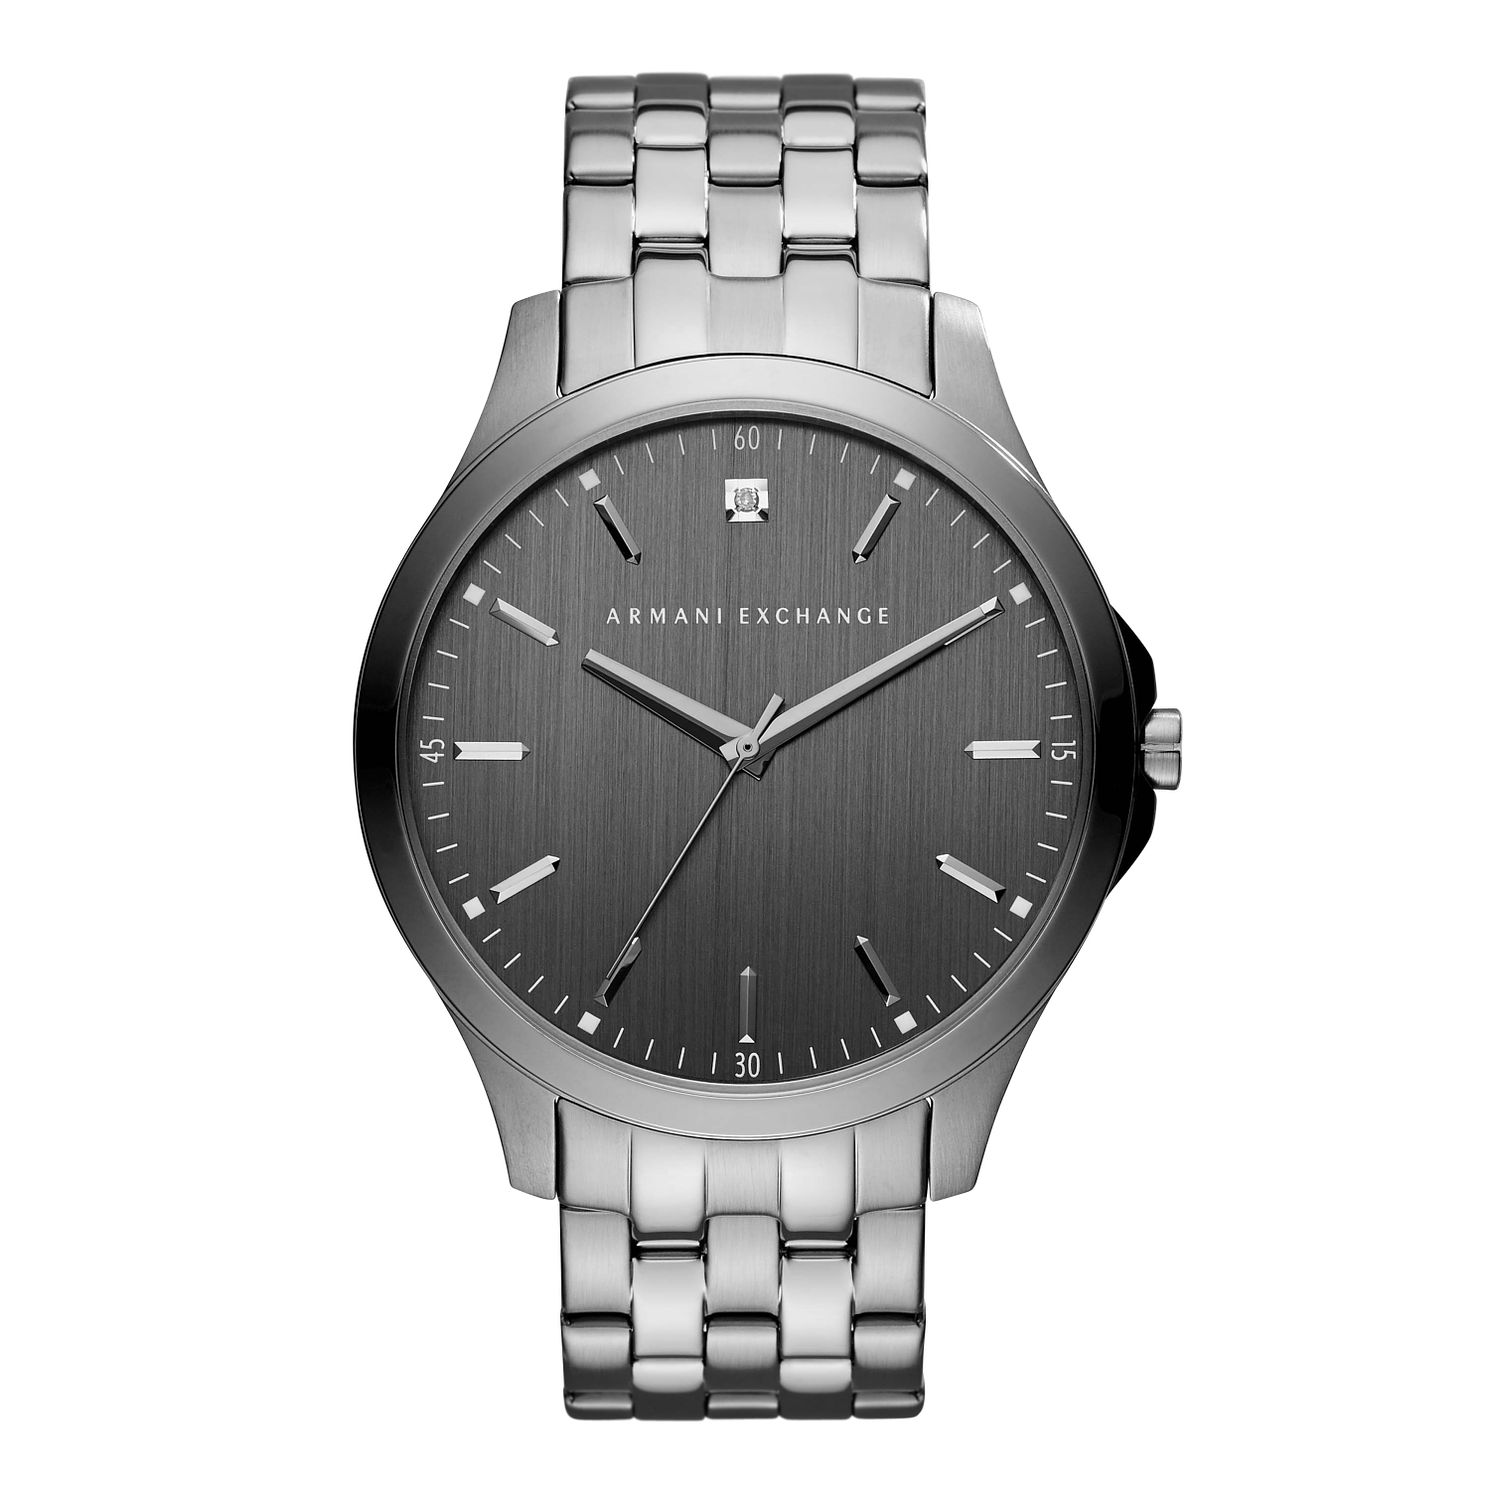 Armani Exchange Men's Stainless Steel Bracelet Watch - Product number 5526590